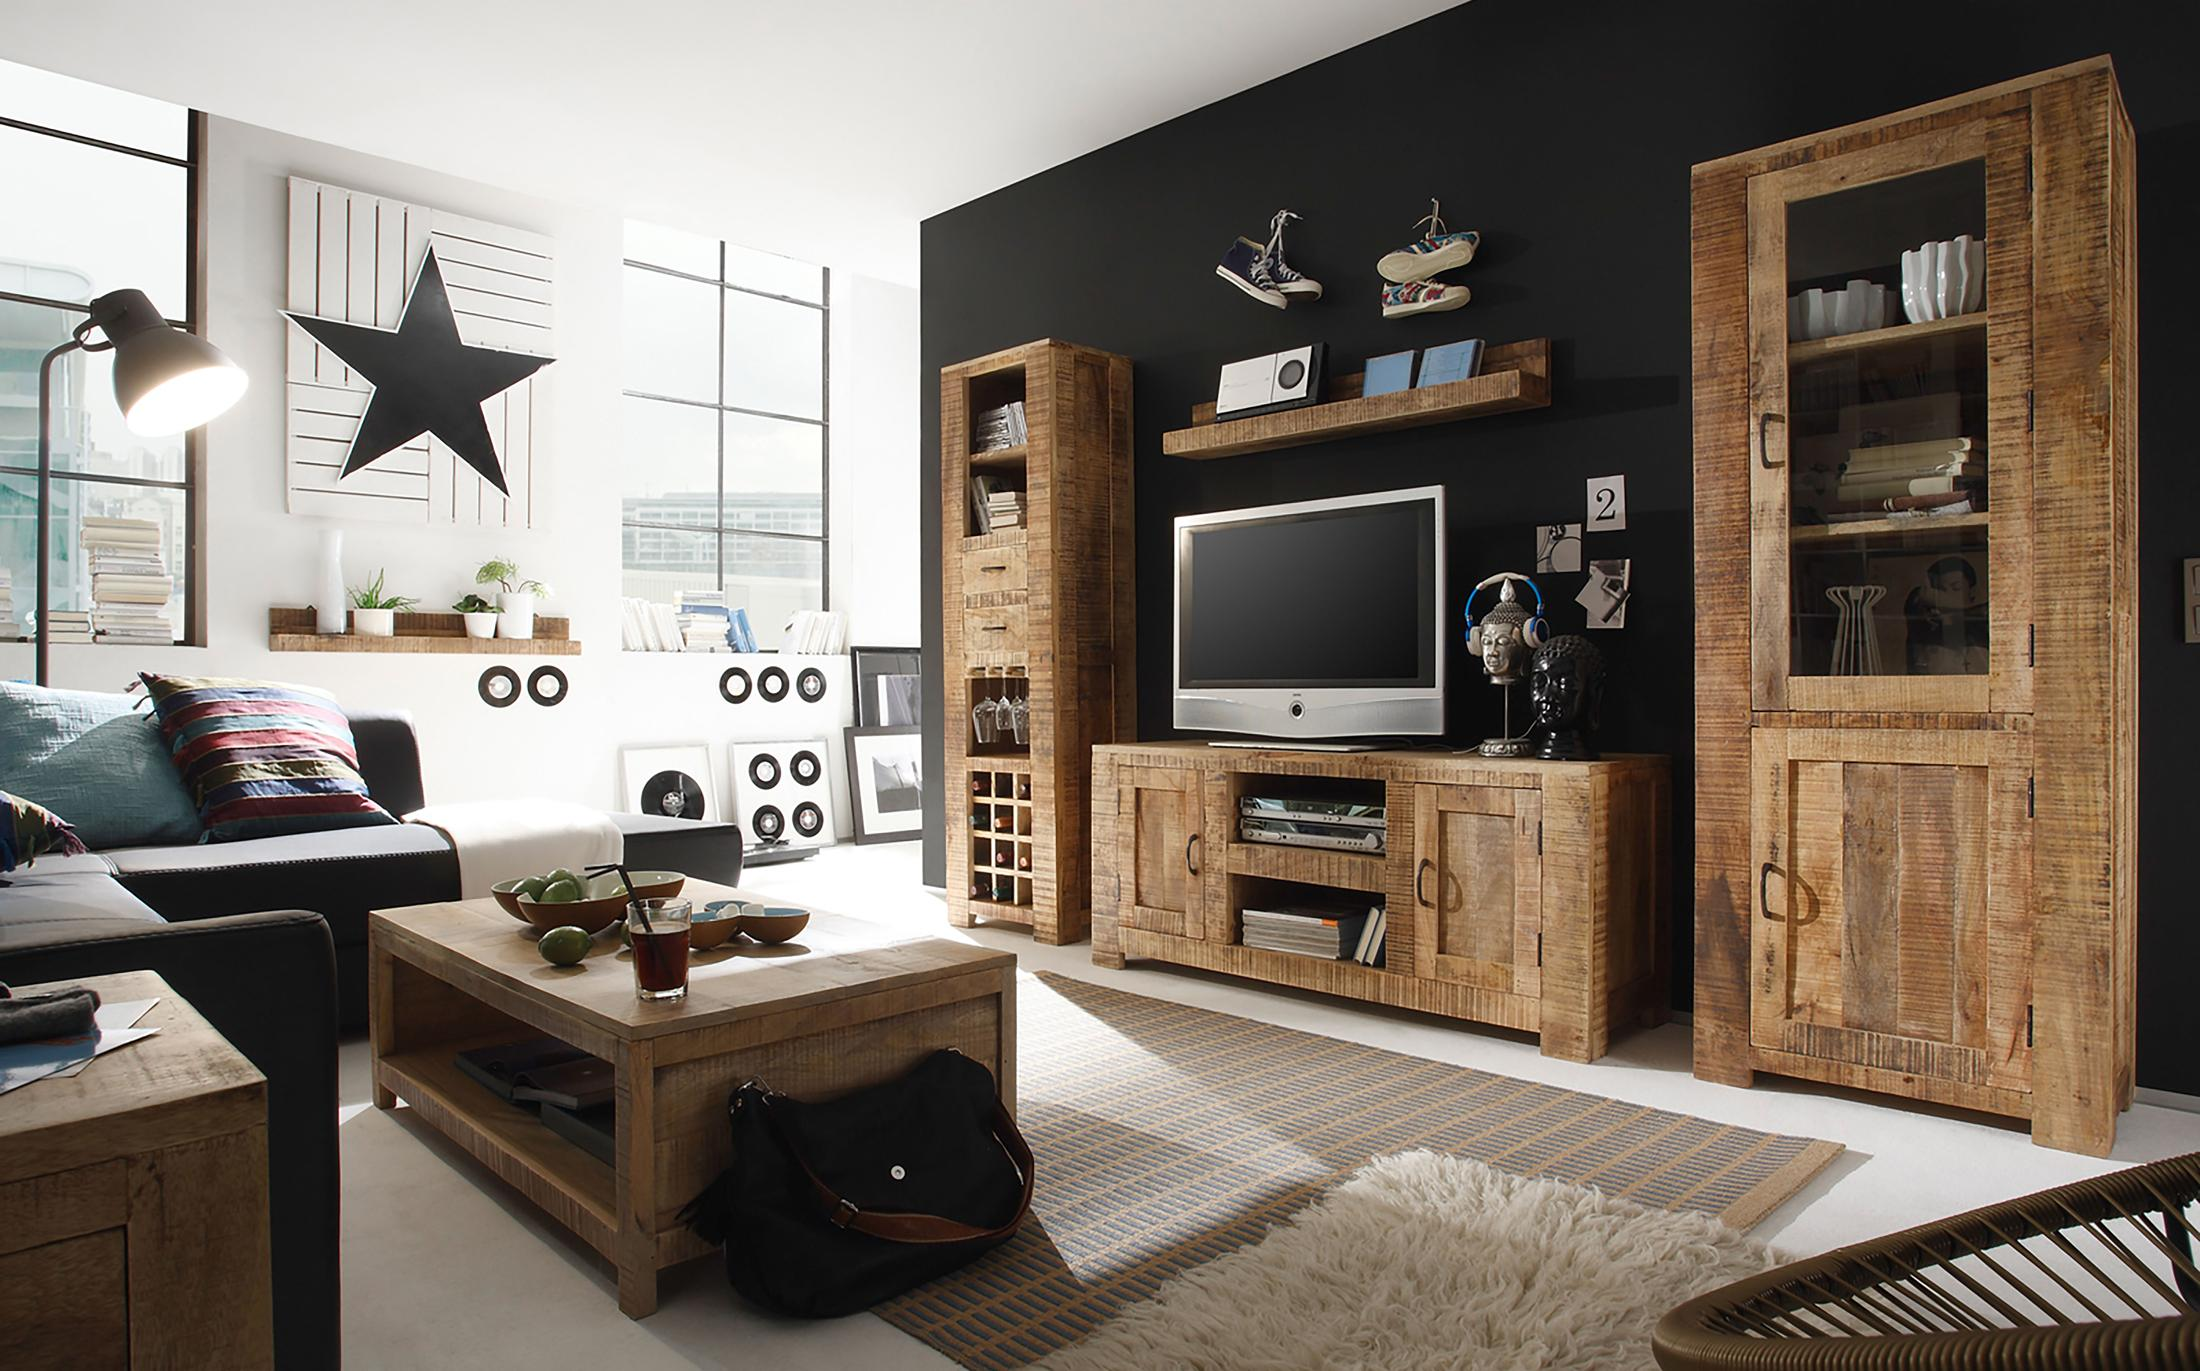 wohnzimmerschrank bilder ideen couchstyle. Black Bedroom Furniture Sets. Home Design Ideas